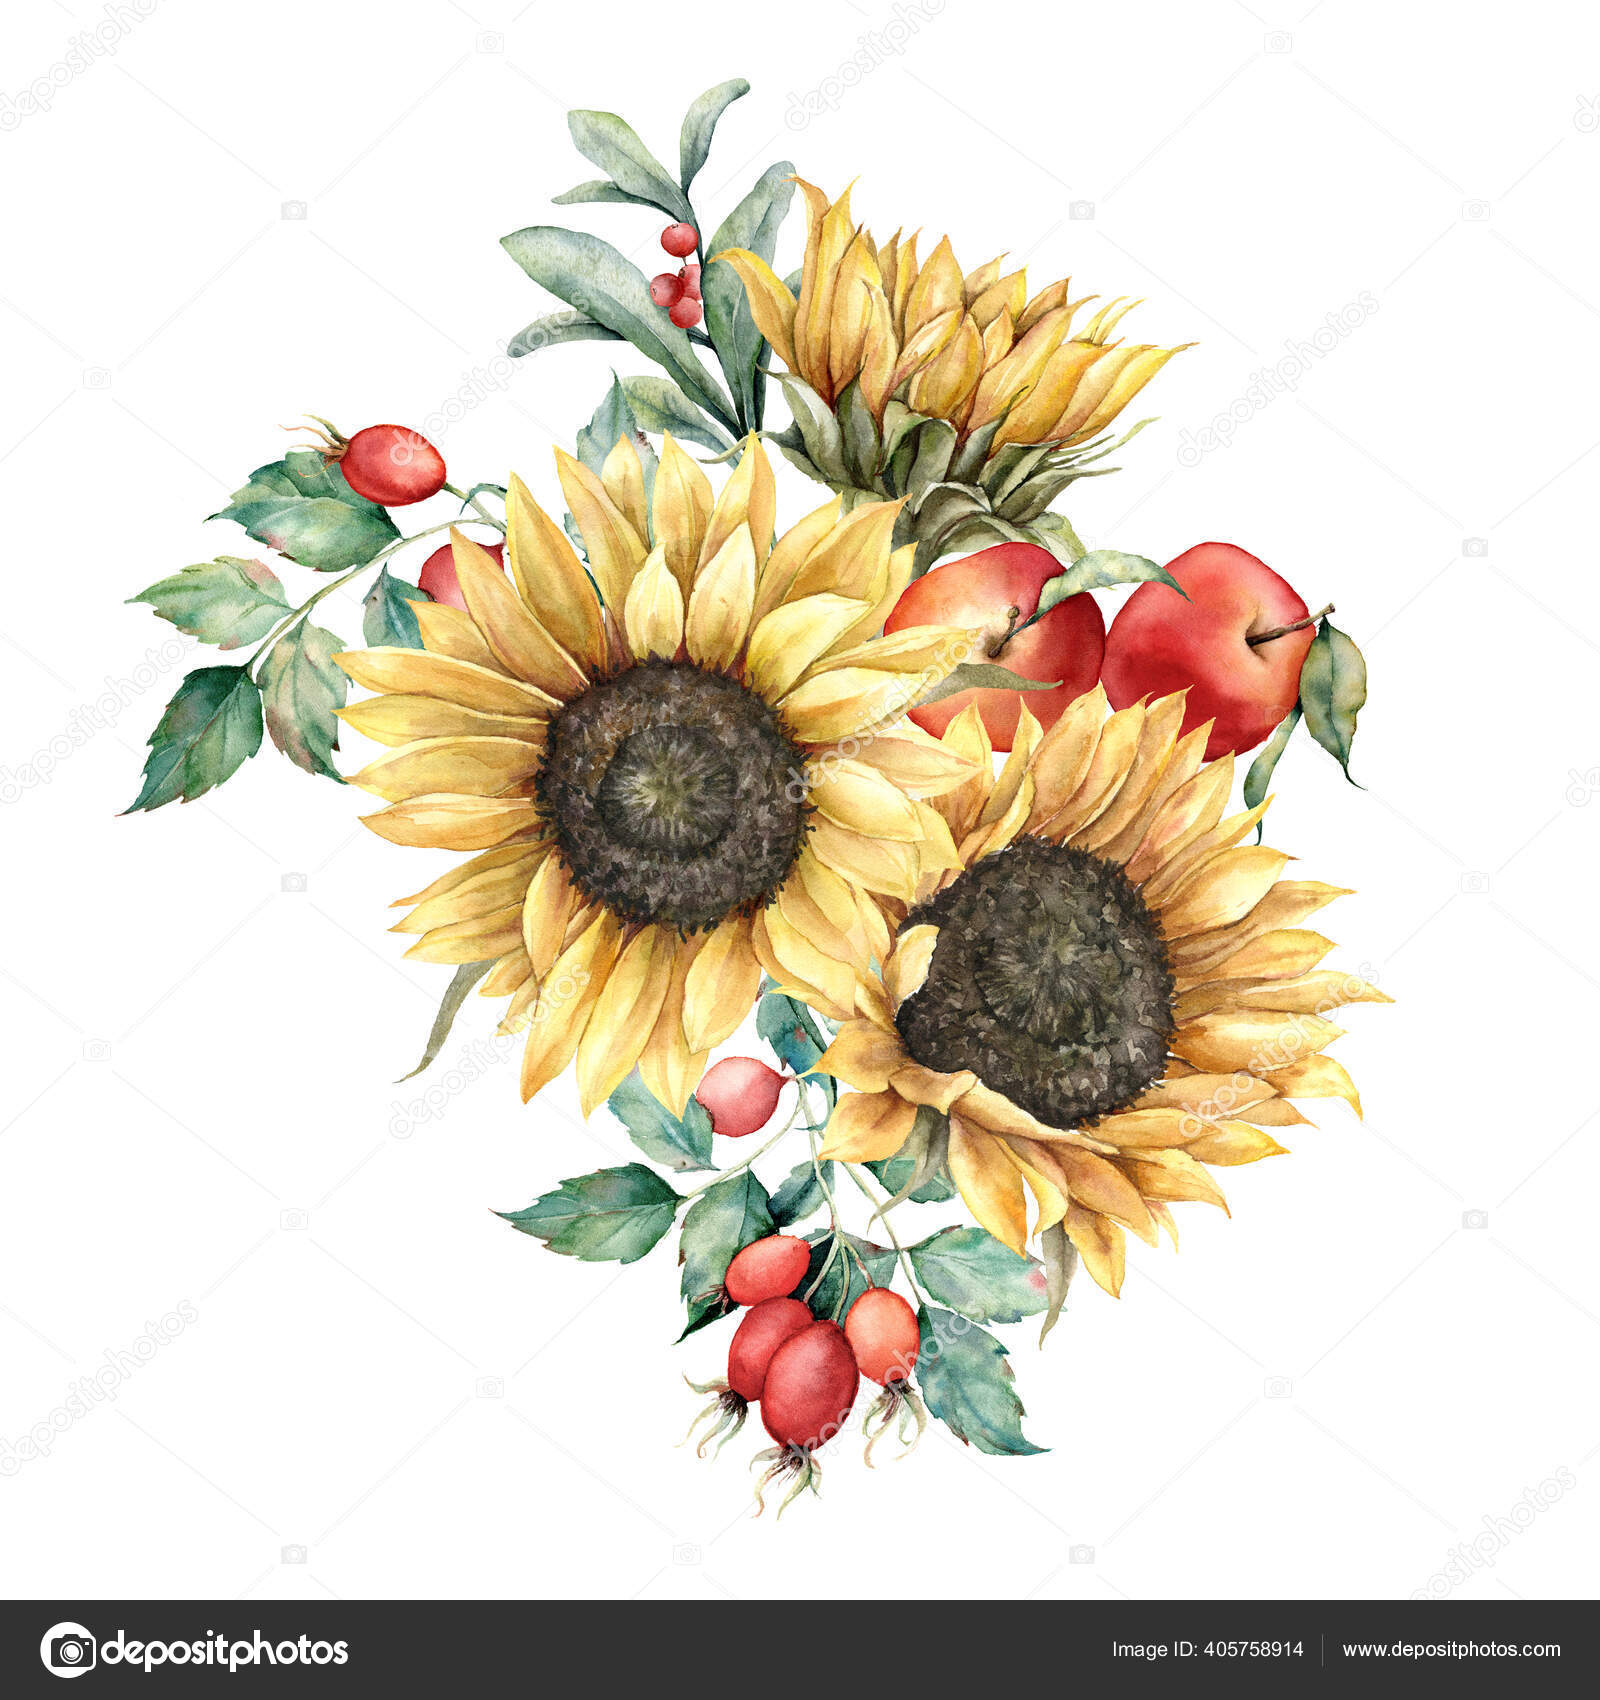 Watercolor Autumn Bouquet With Sunflowers Berries Leaves And Dogroses Hand Painted Rustic Card Isolated On White Background Floral Illustration For Design Print Fabric Or Background Stock Photo C Derbisheva 405758914